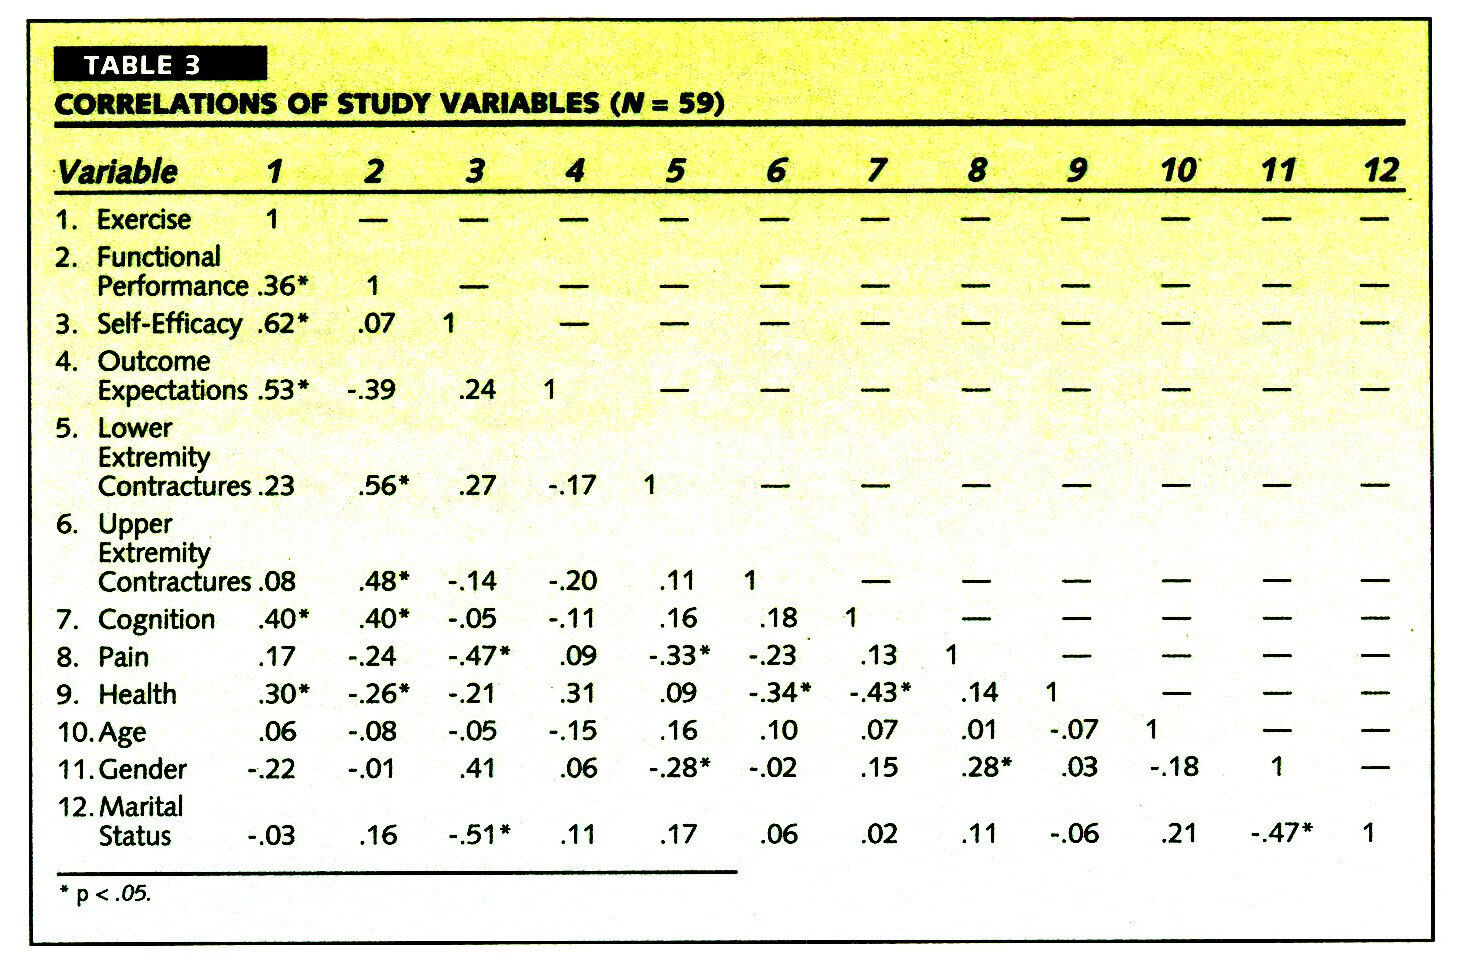 TABLE 3CORRELATIONS OF STUDY VARIABLES (JV = 59)